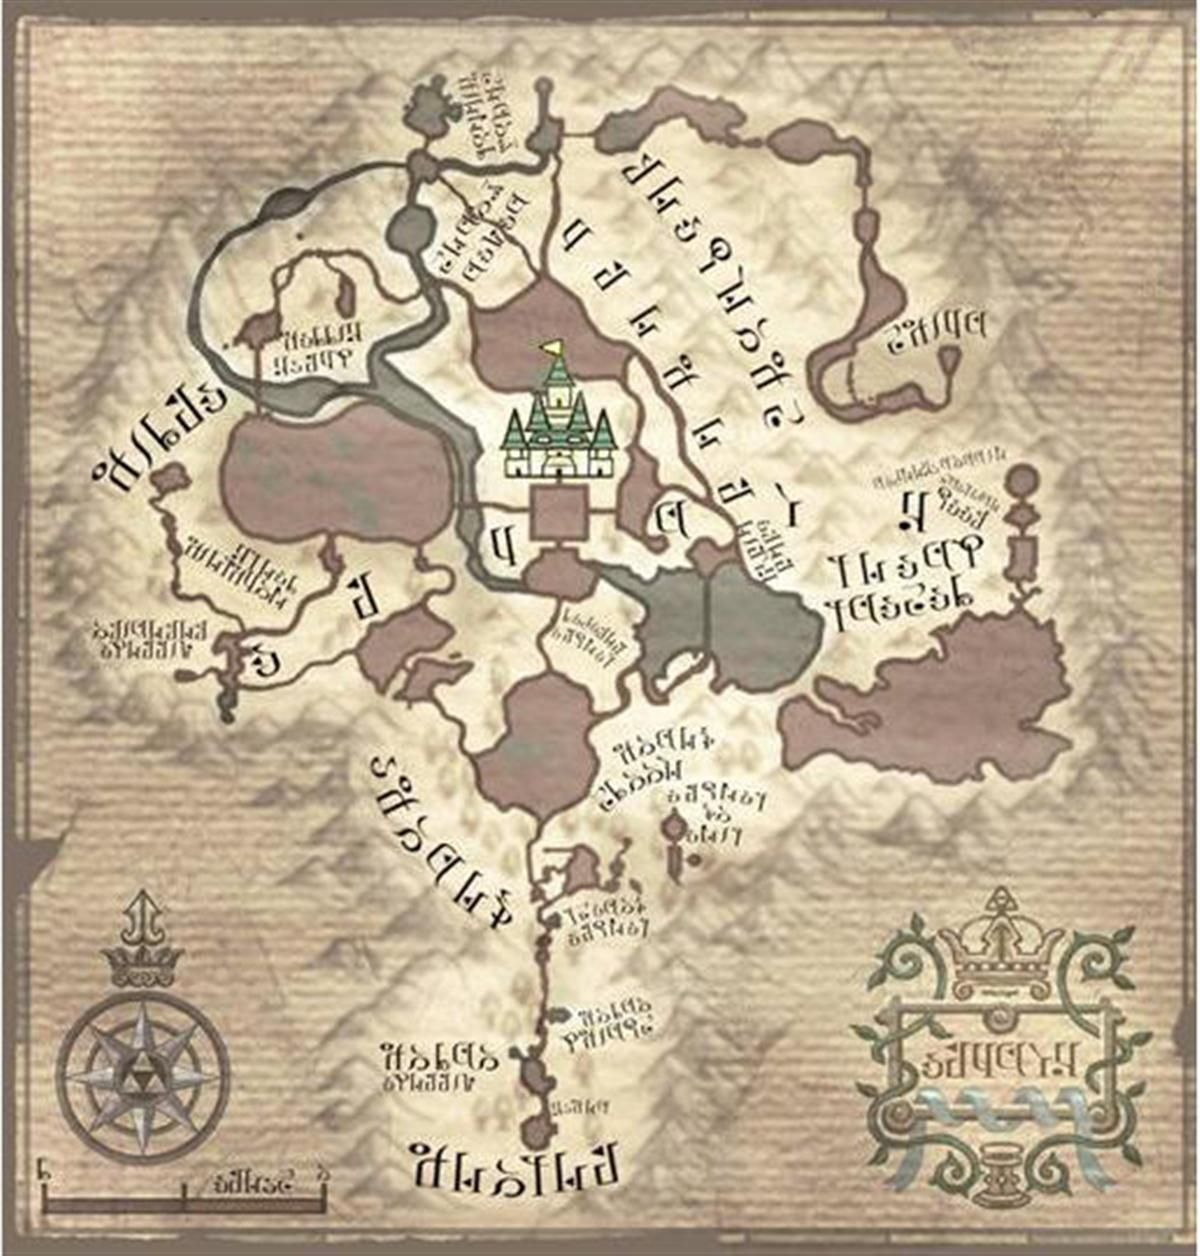 Legend of zelda twilight princess hyrule map nintendo wii legend of zelda twilight princess hyrule map nintendo wii version gumiabroncs Images